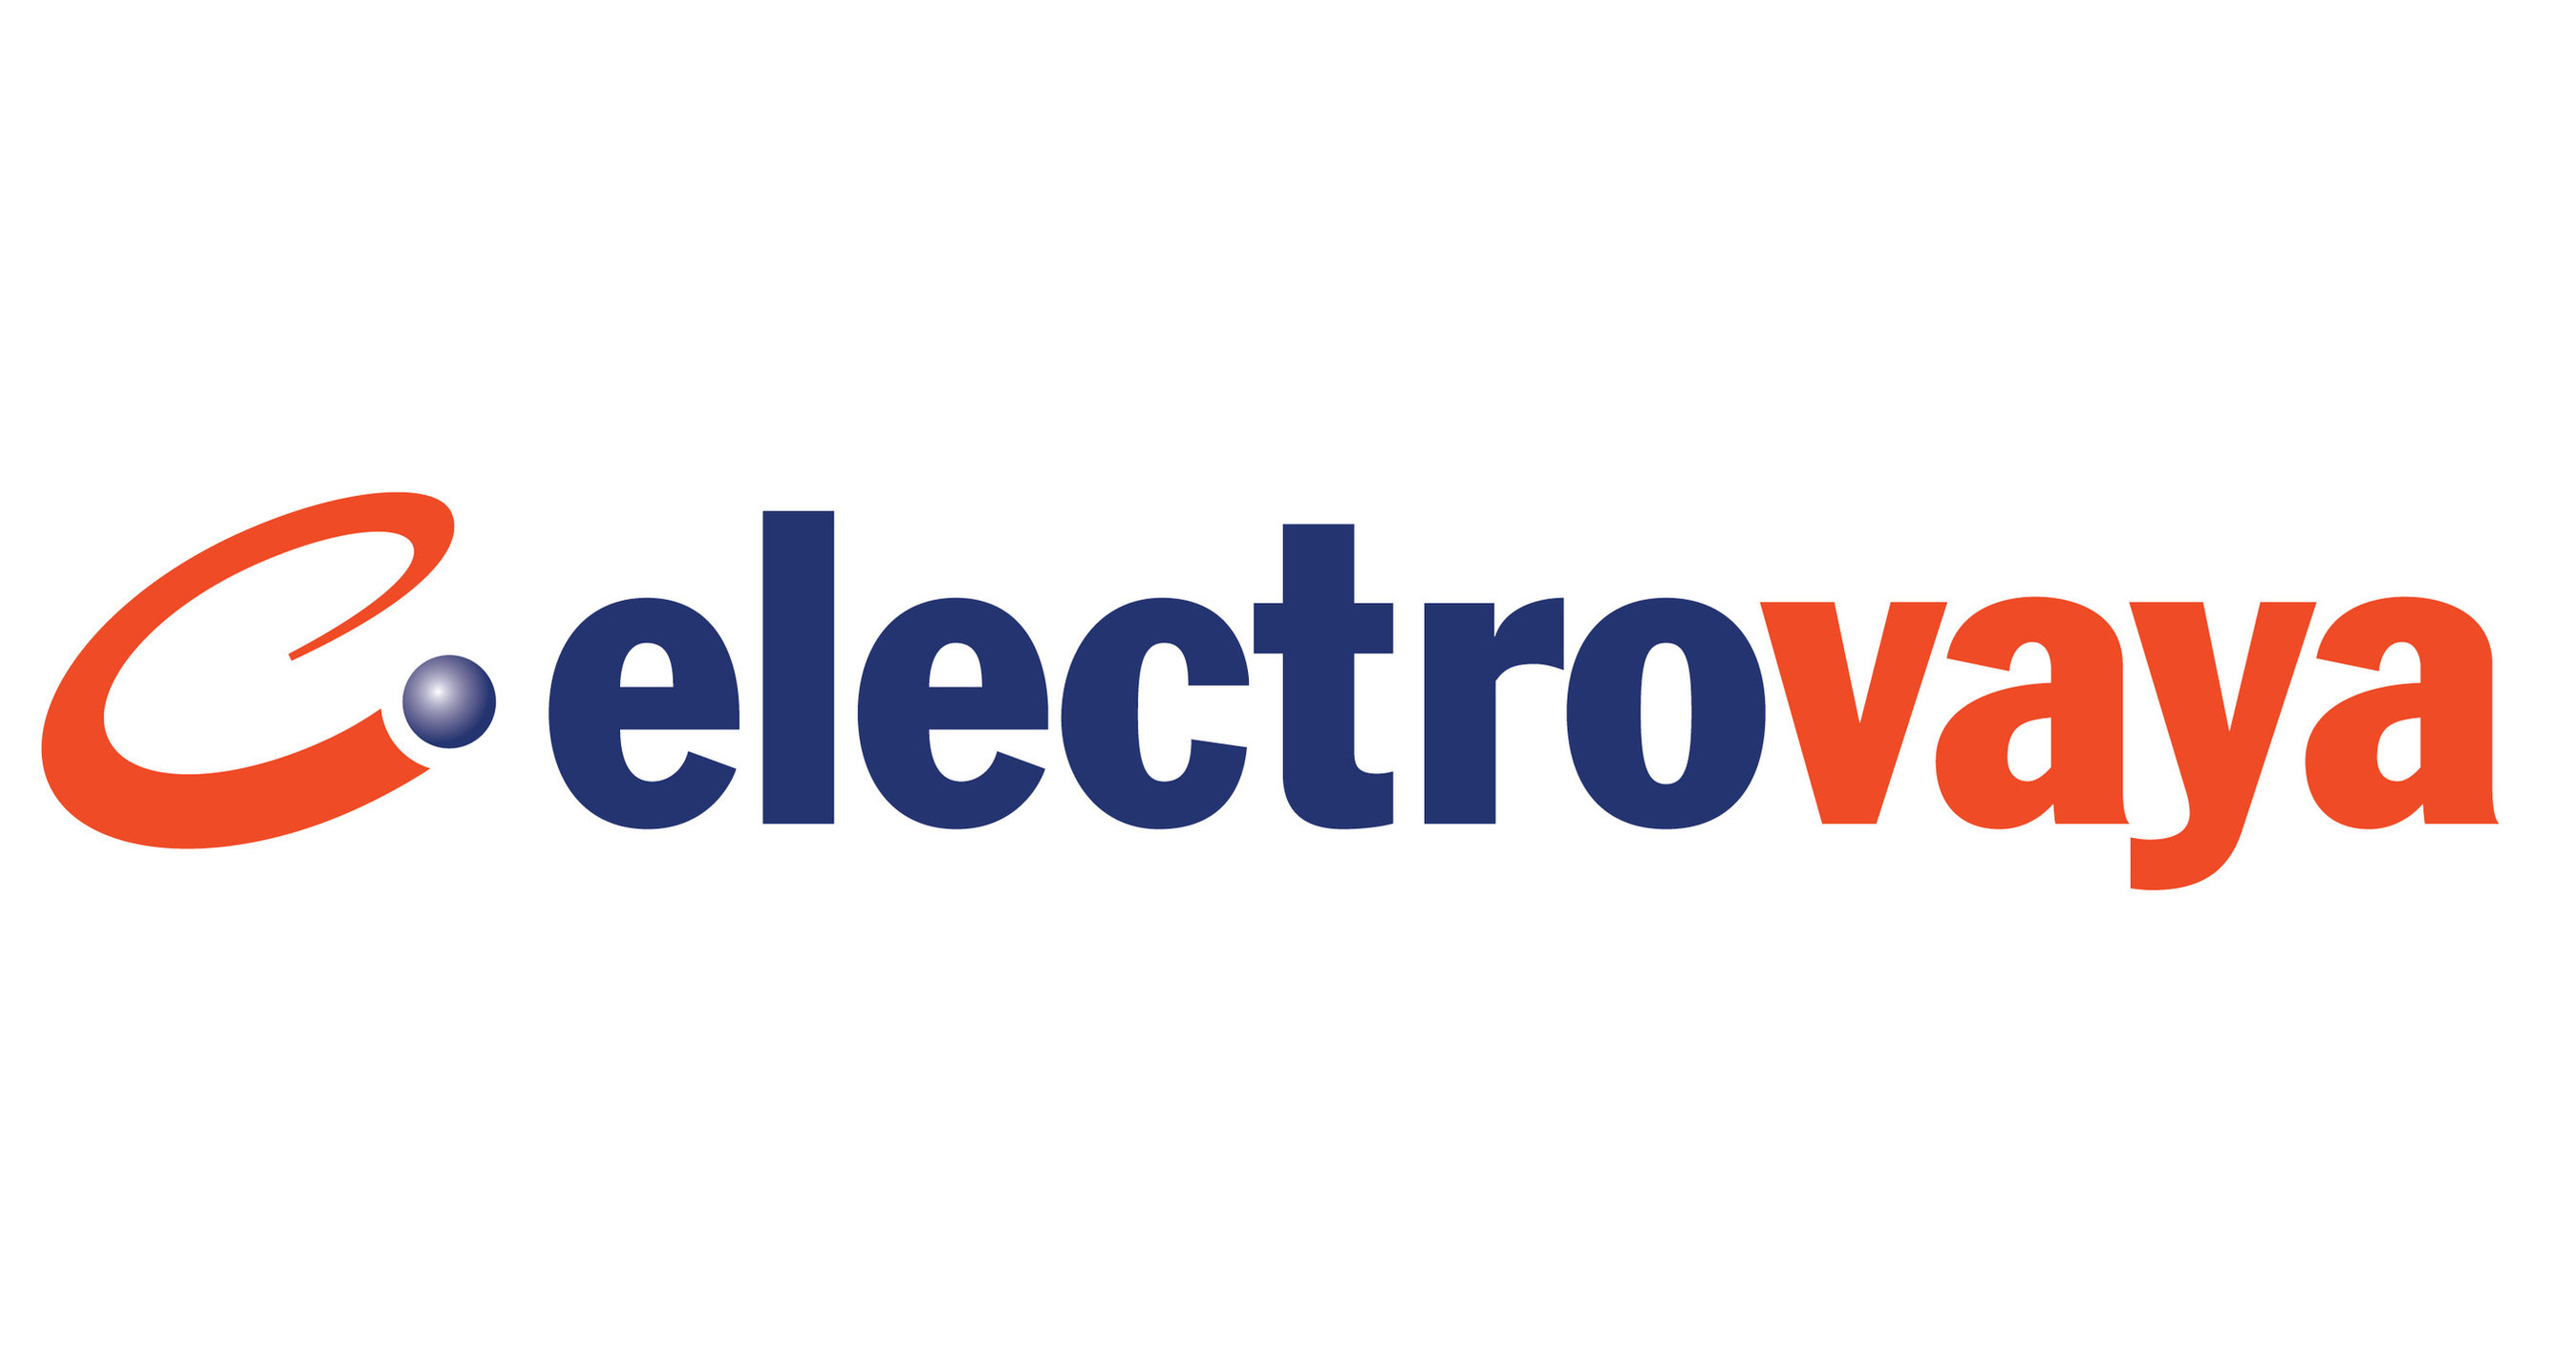 Electrovaya Announces Appointment of John Macdonald to its Board of